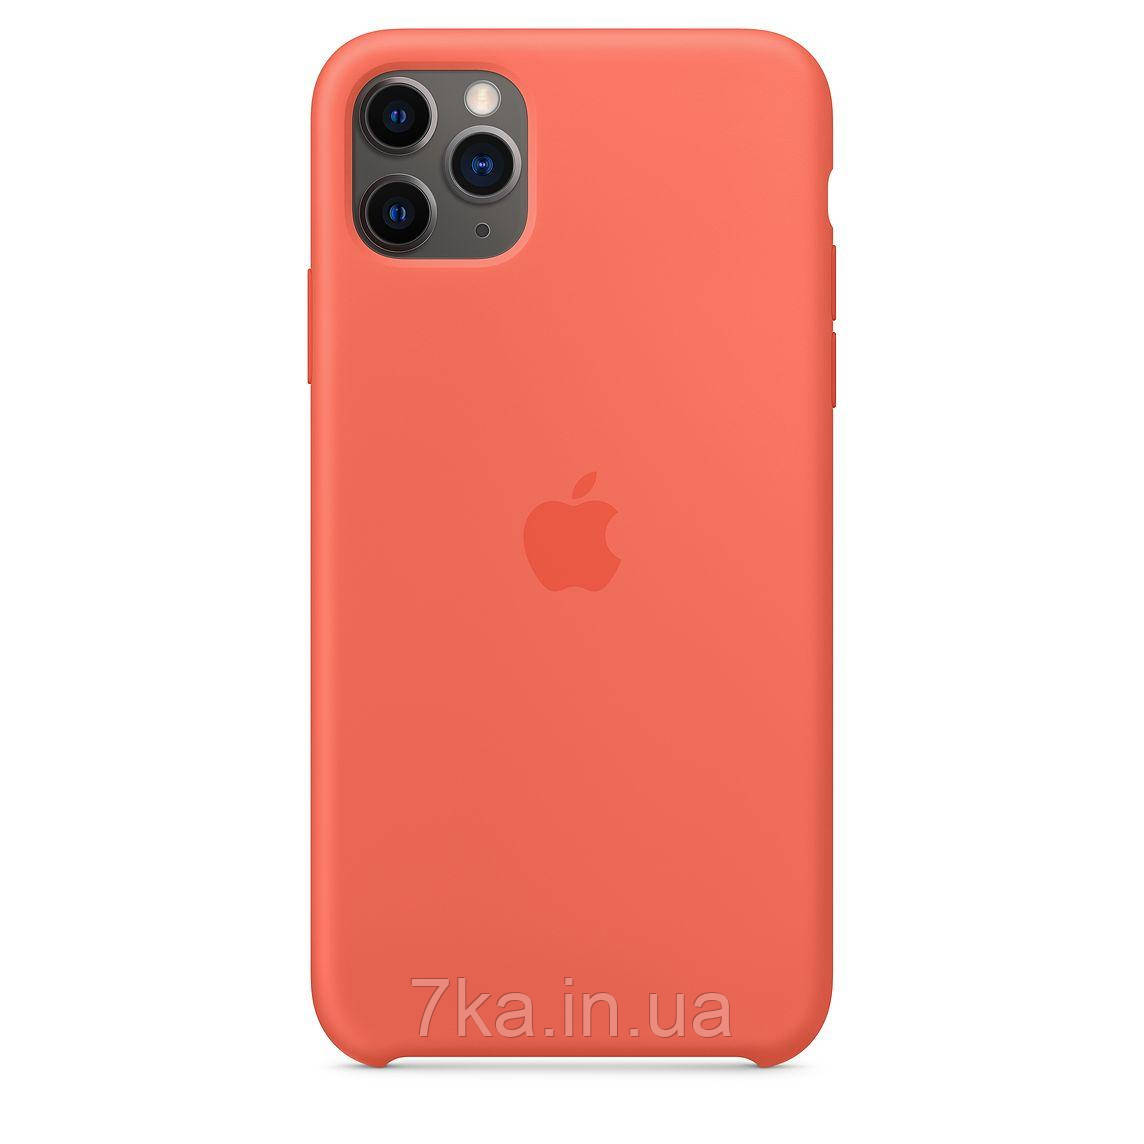 Силиконовый чехол Silicone Case ( High Copy)  для iPhone 11 Pro Max Orange